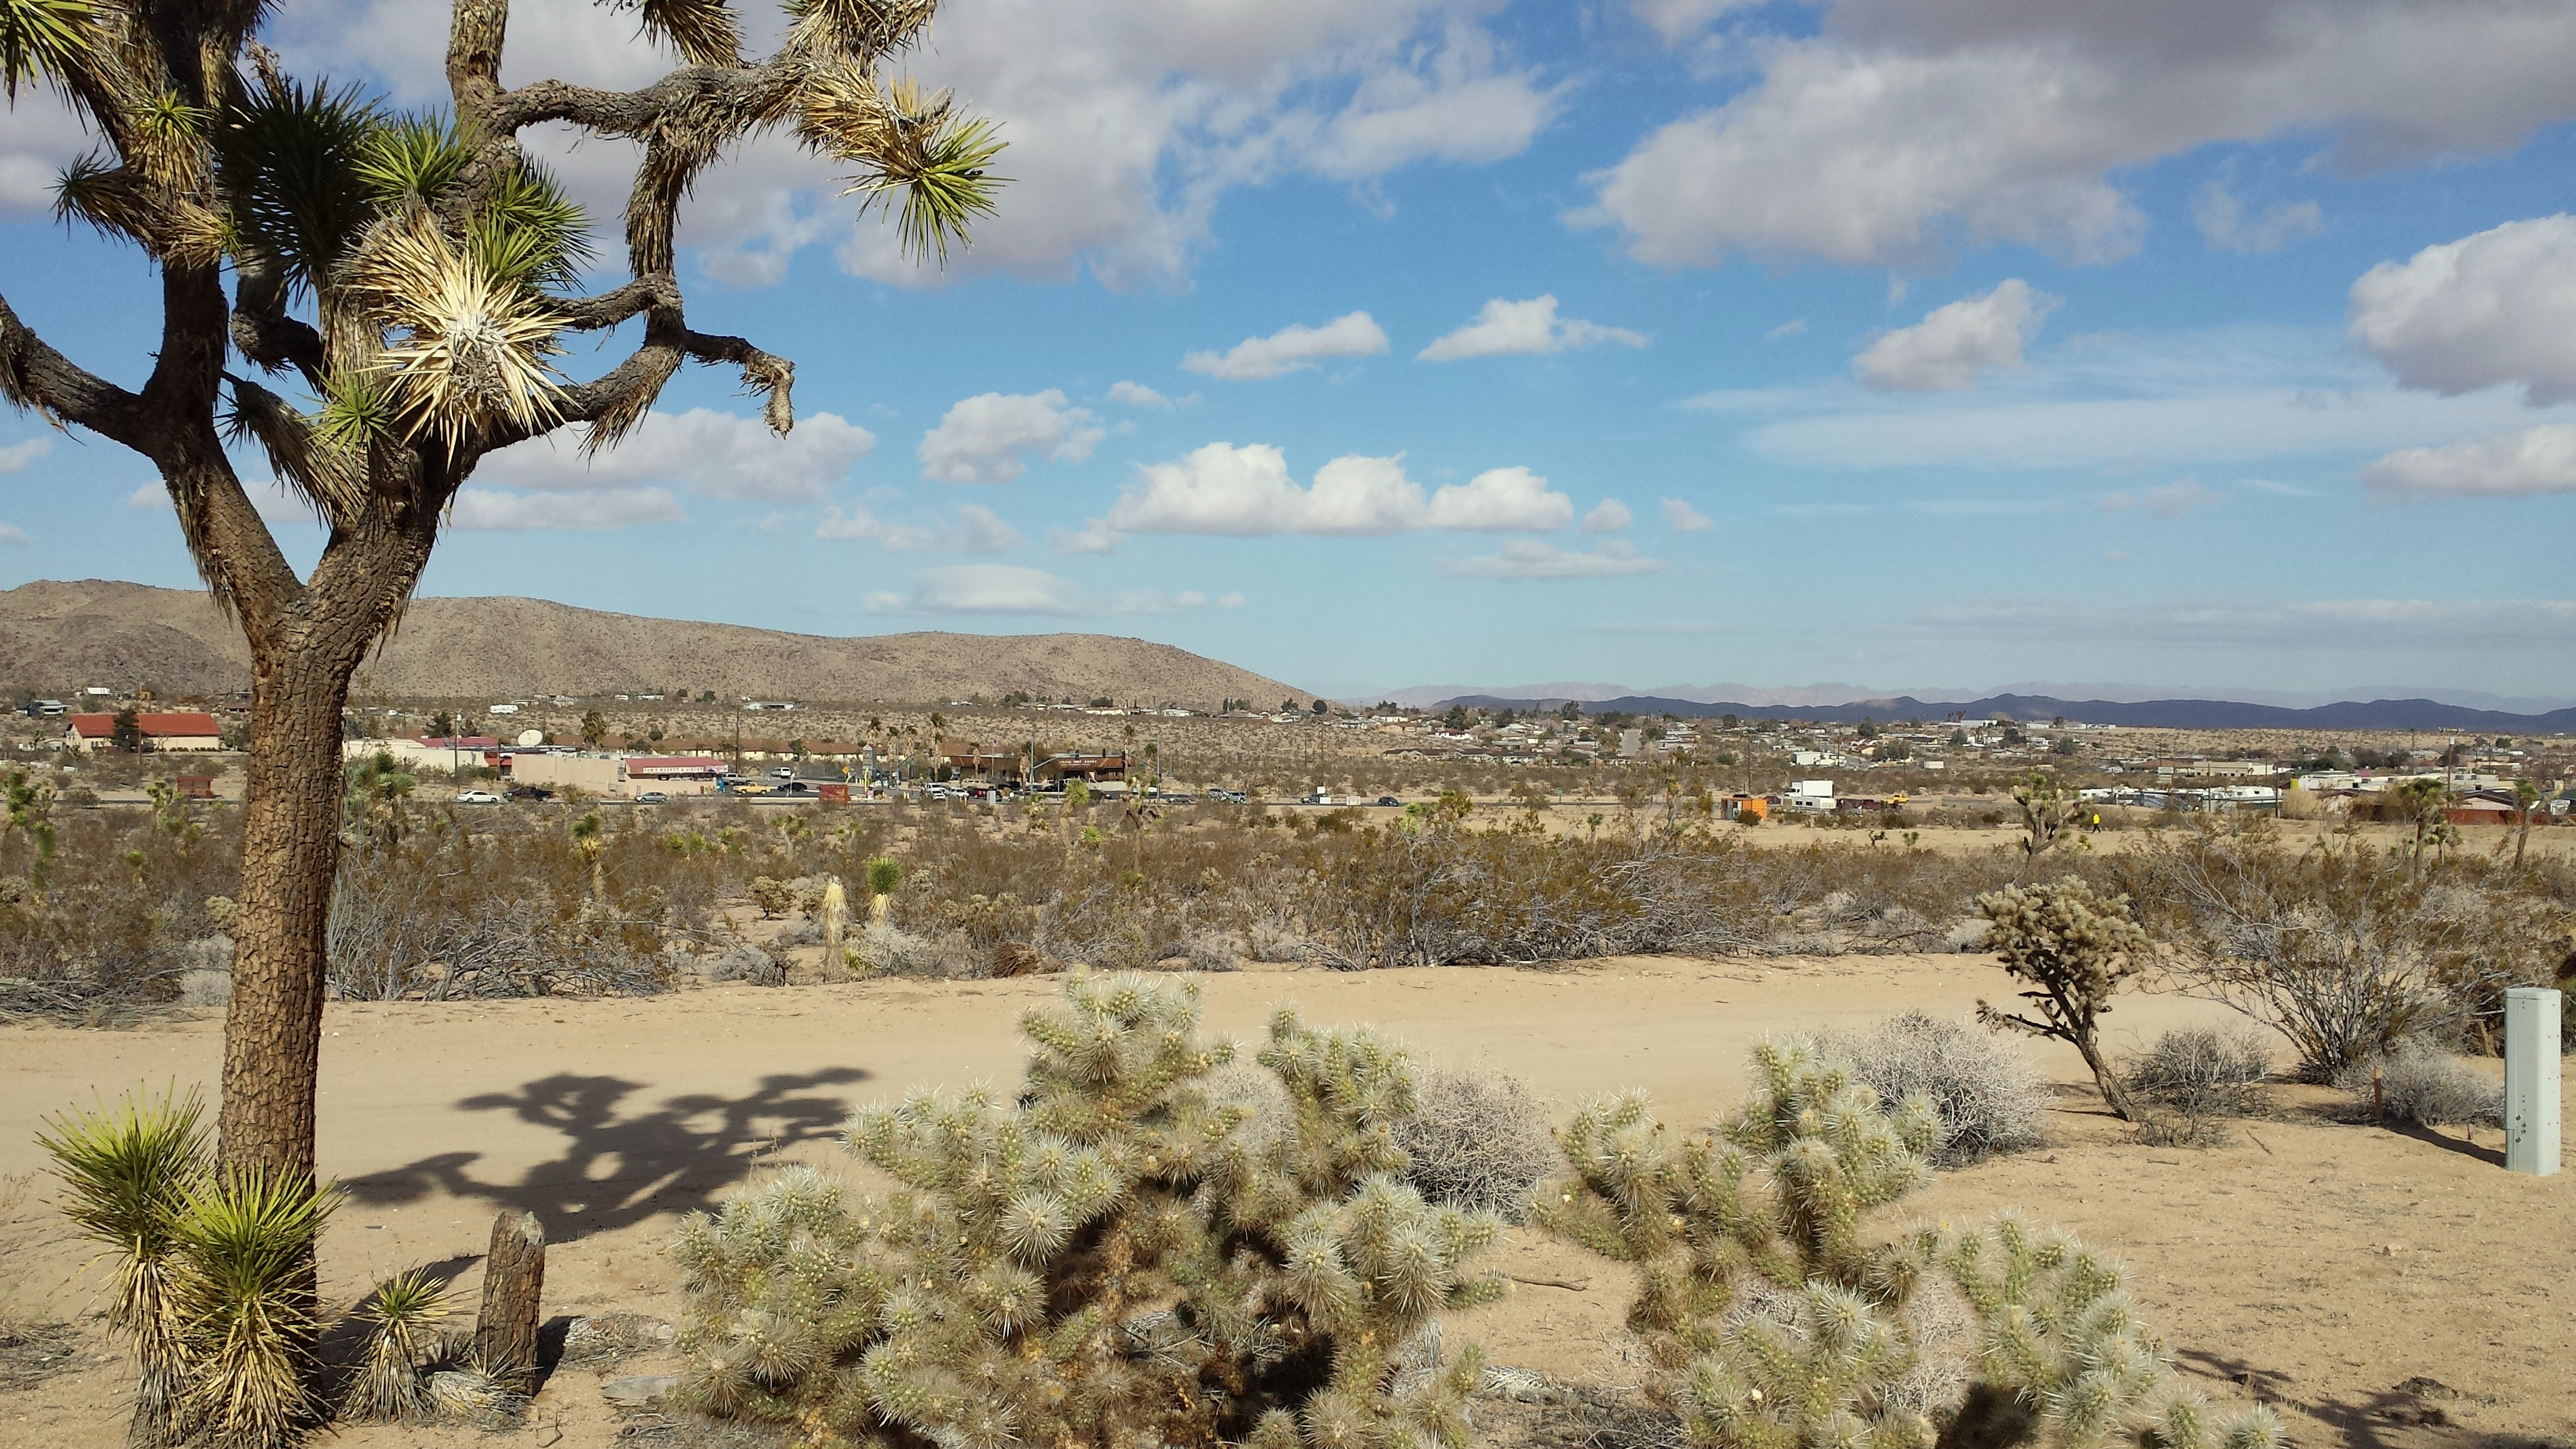 6645 Outpost Rd For Sale In Joshua Tree Ca Land For Sale In Adelanto Ca And Real Estate